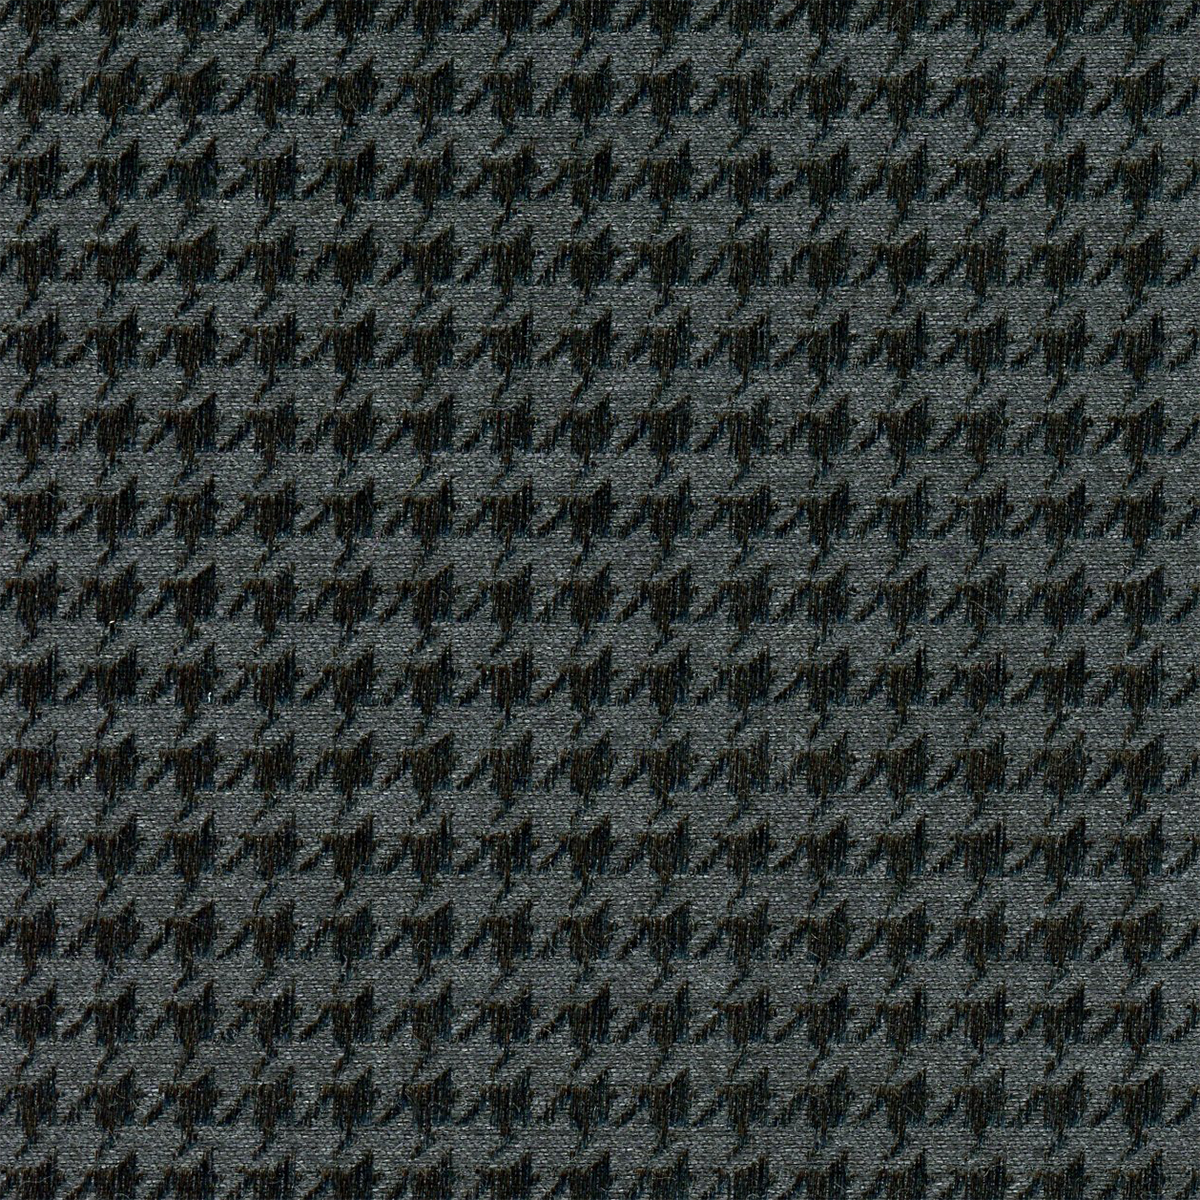 5c217b0ae61da Fabric Polyester & Wool Blend; BRW5004-004 Charcoal - Richard Tie ...